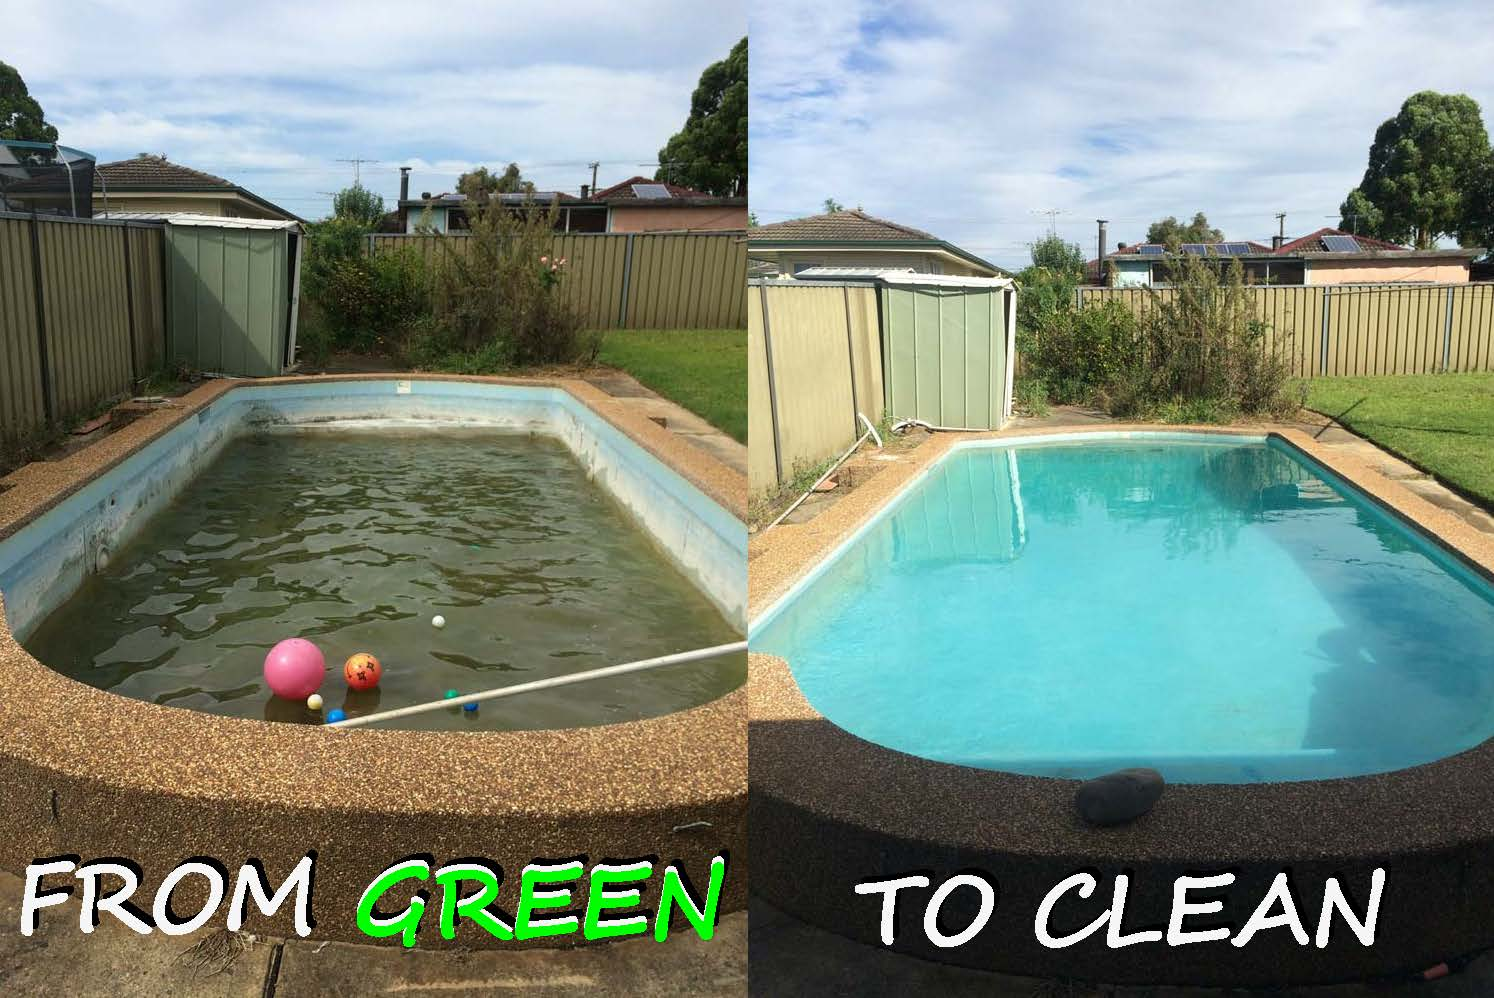 How to clean a neglected green swimming pool clean pools for Uses for old swimming pools